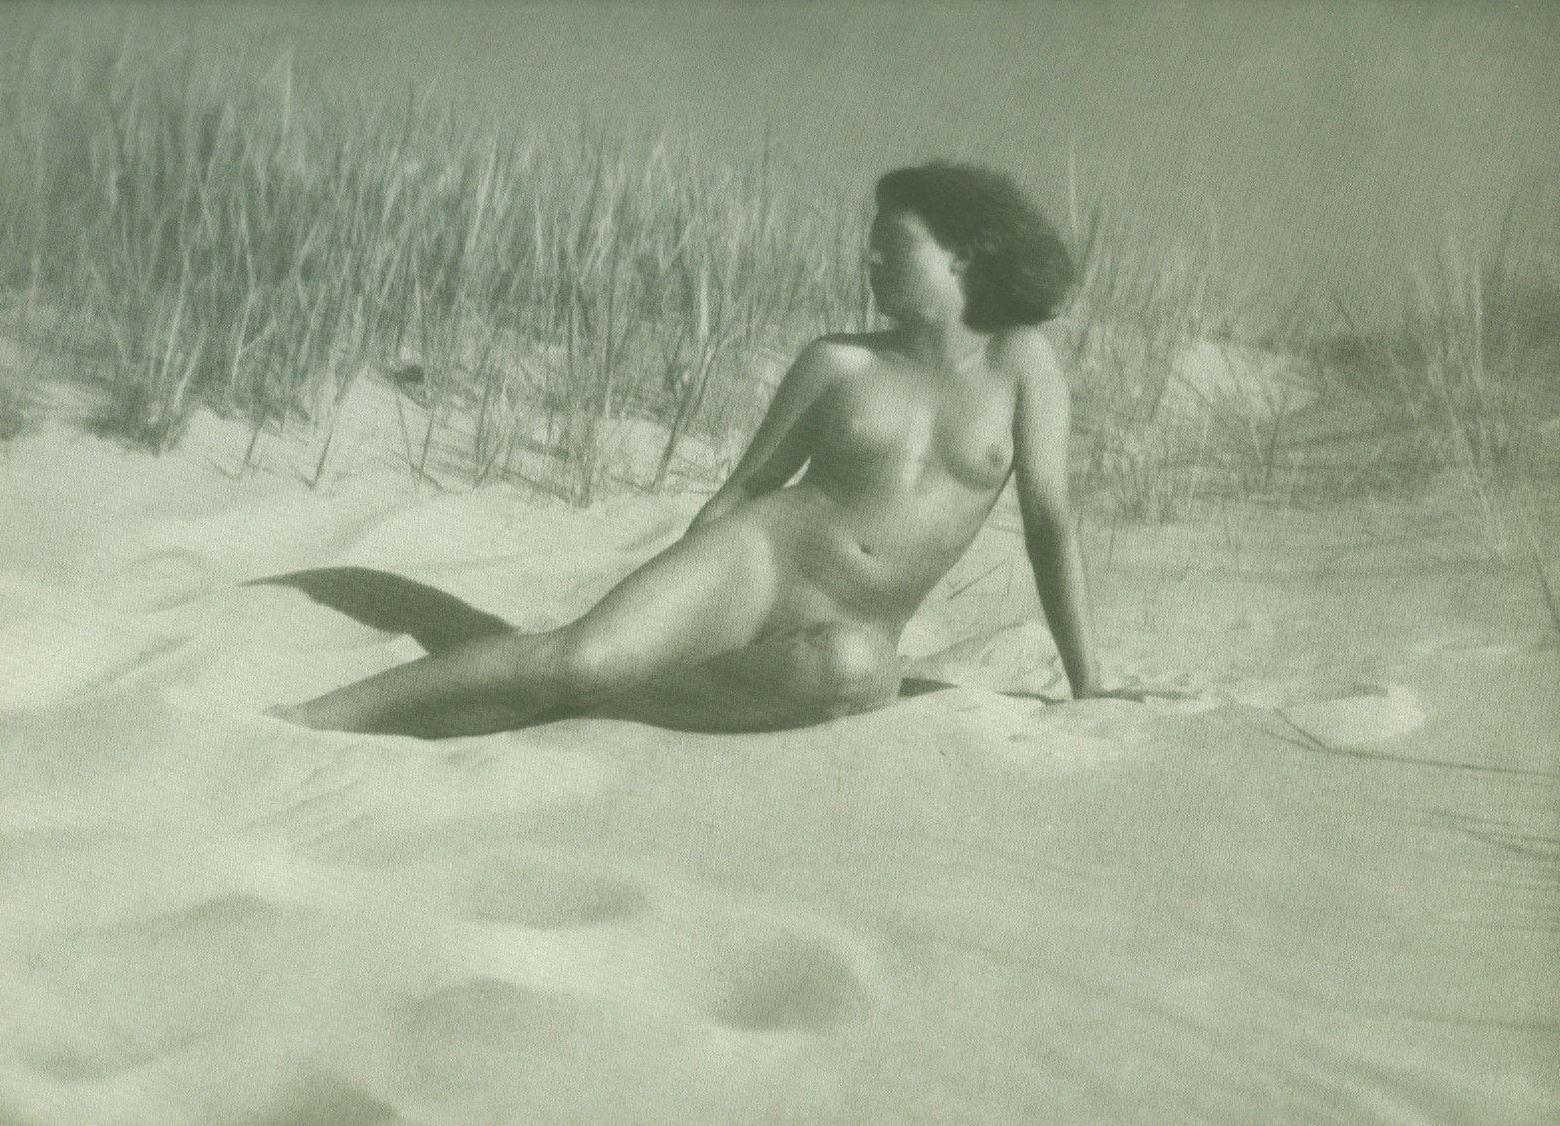 Photographe inconnu. Erotic nude. Via ebay